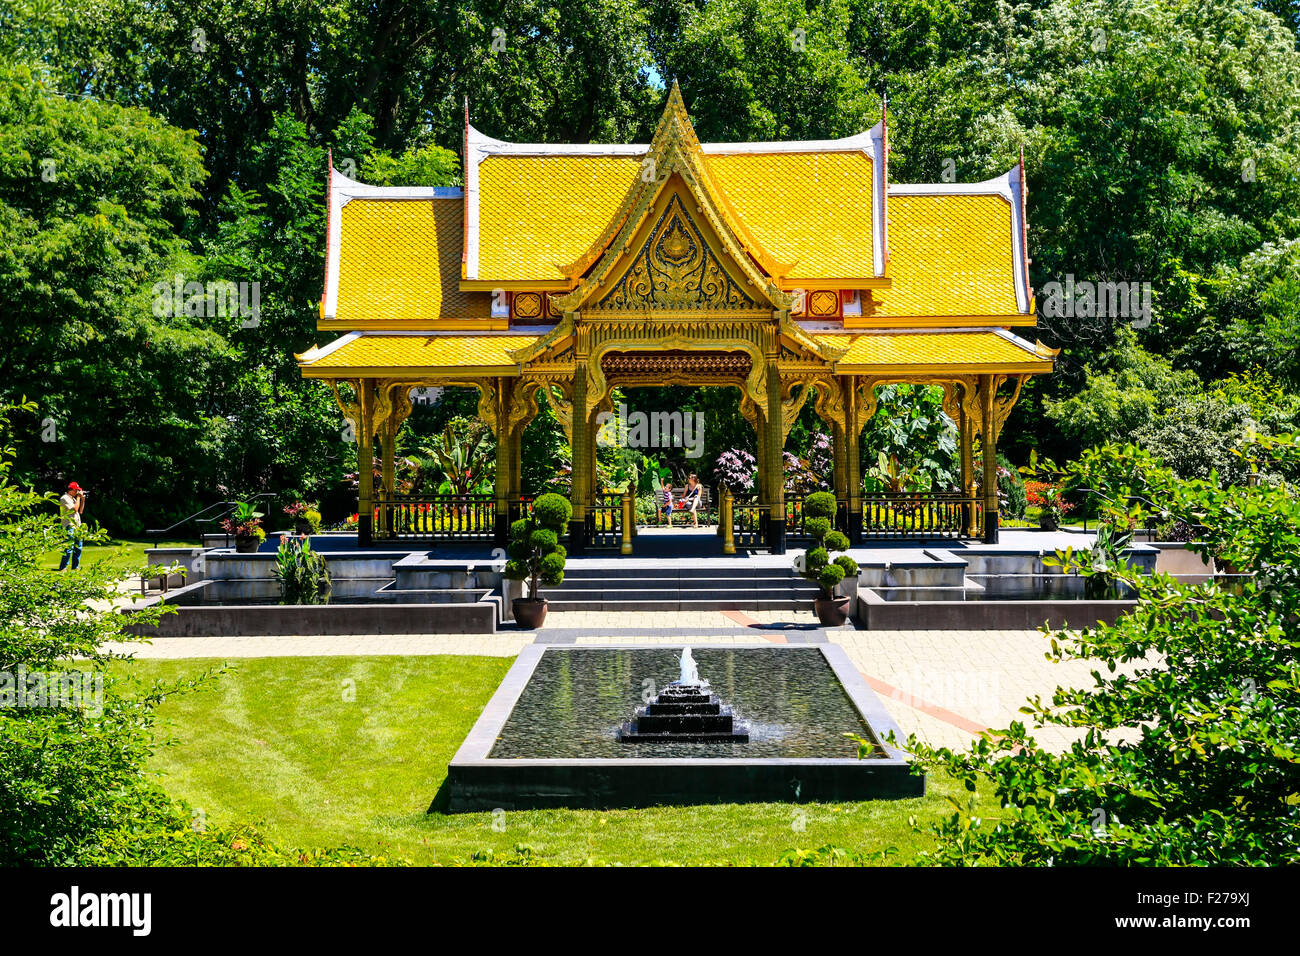 Fall Comes To Garden Of Thai Pavilion >> Thai Pavilion Garden Olbrich Botanical Stock Photos Thai Pavilion